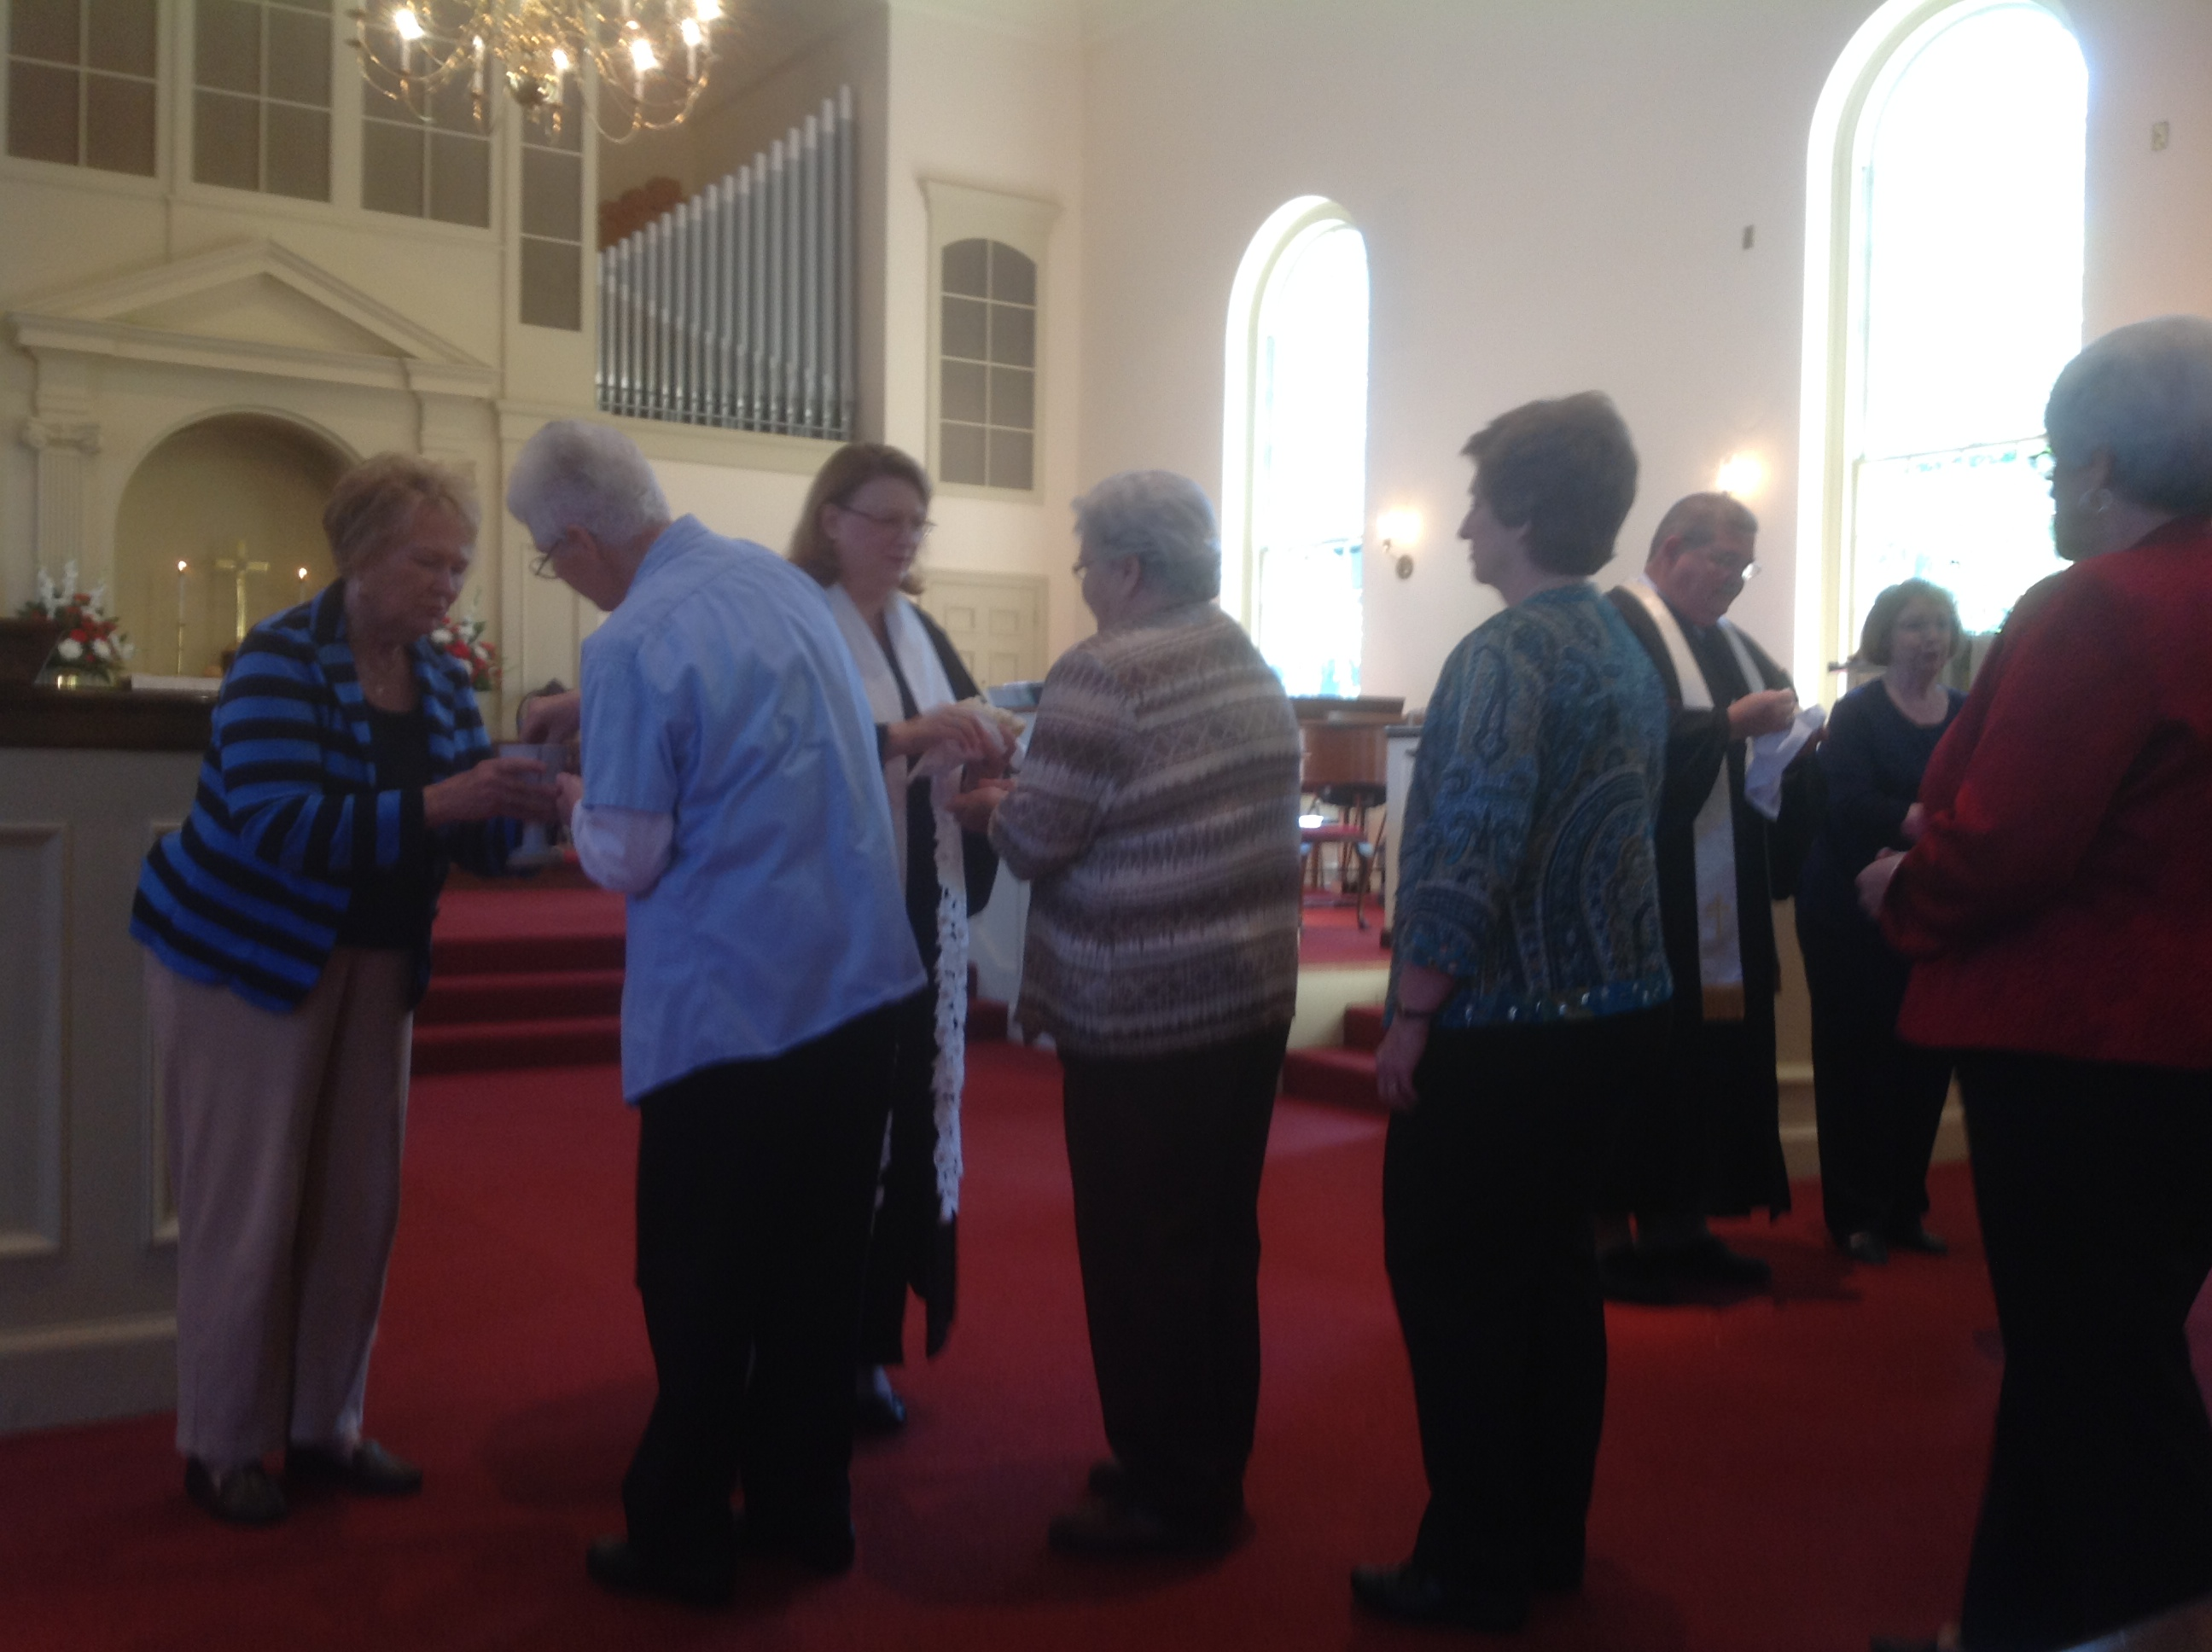 Communion during Insatllation of UMW officers Oct 4